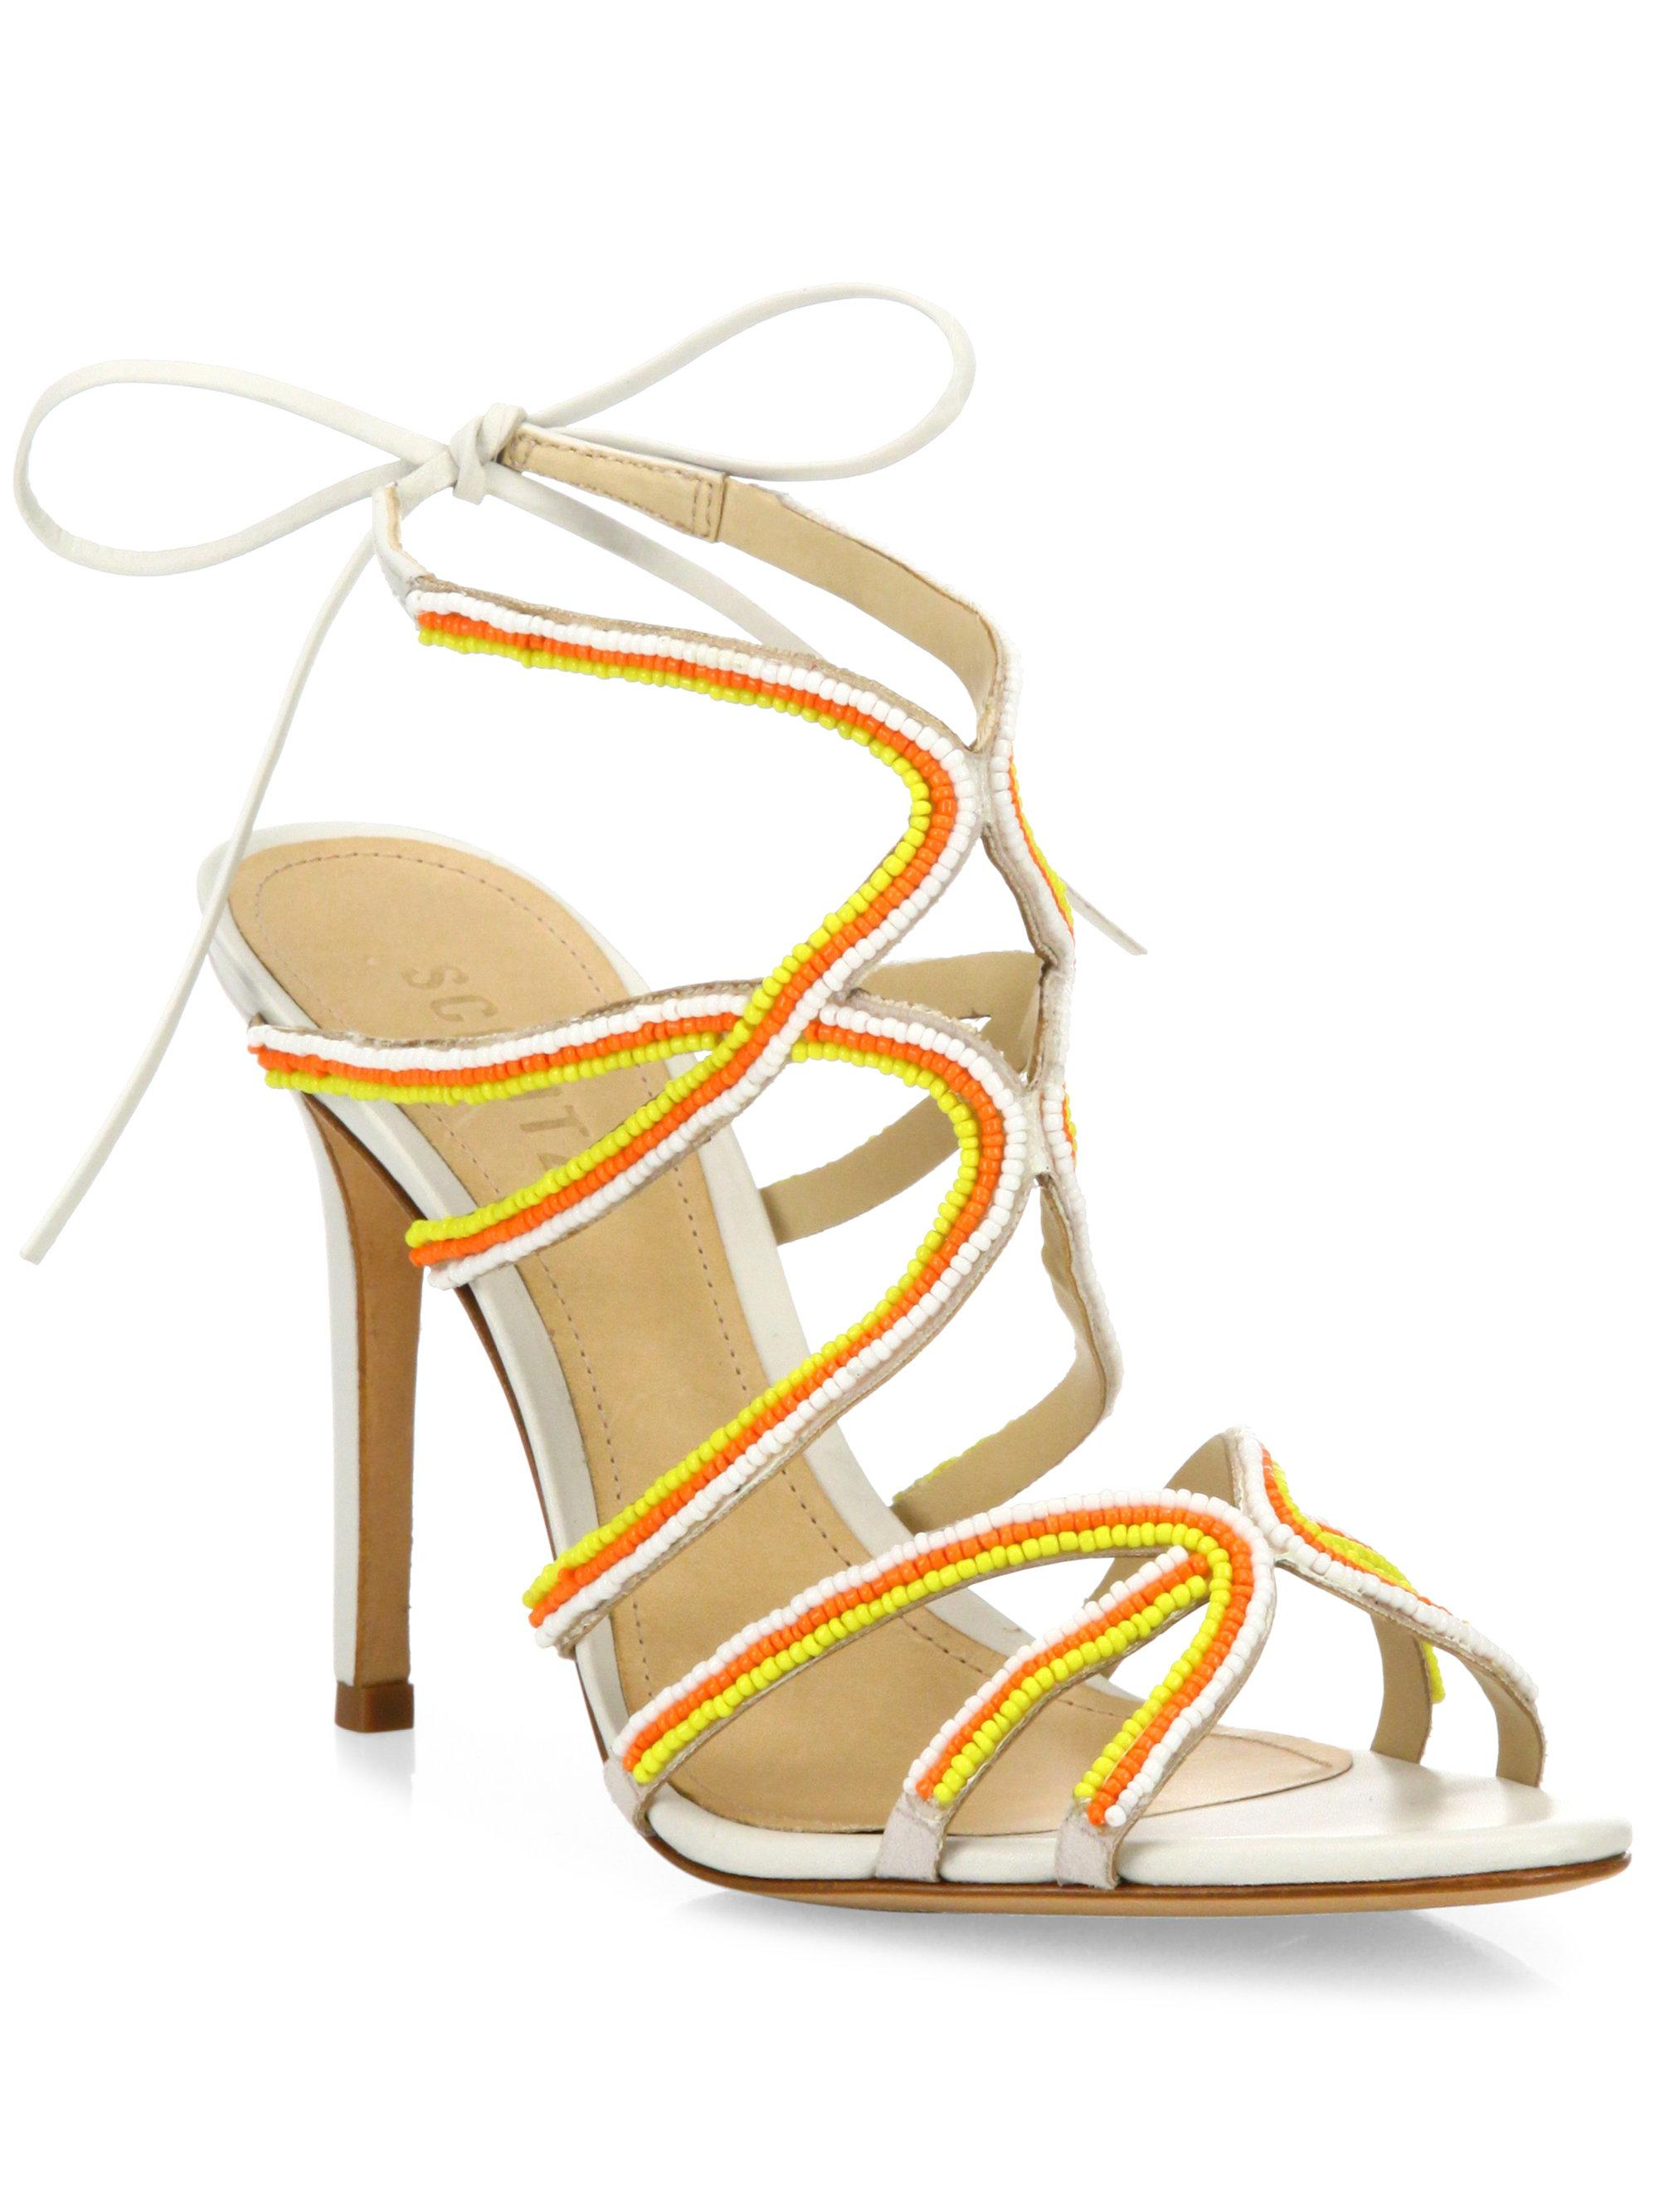 ccecbe22ef8 Lyst - Schutz Meera Beaded Leather Sandals in Natural